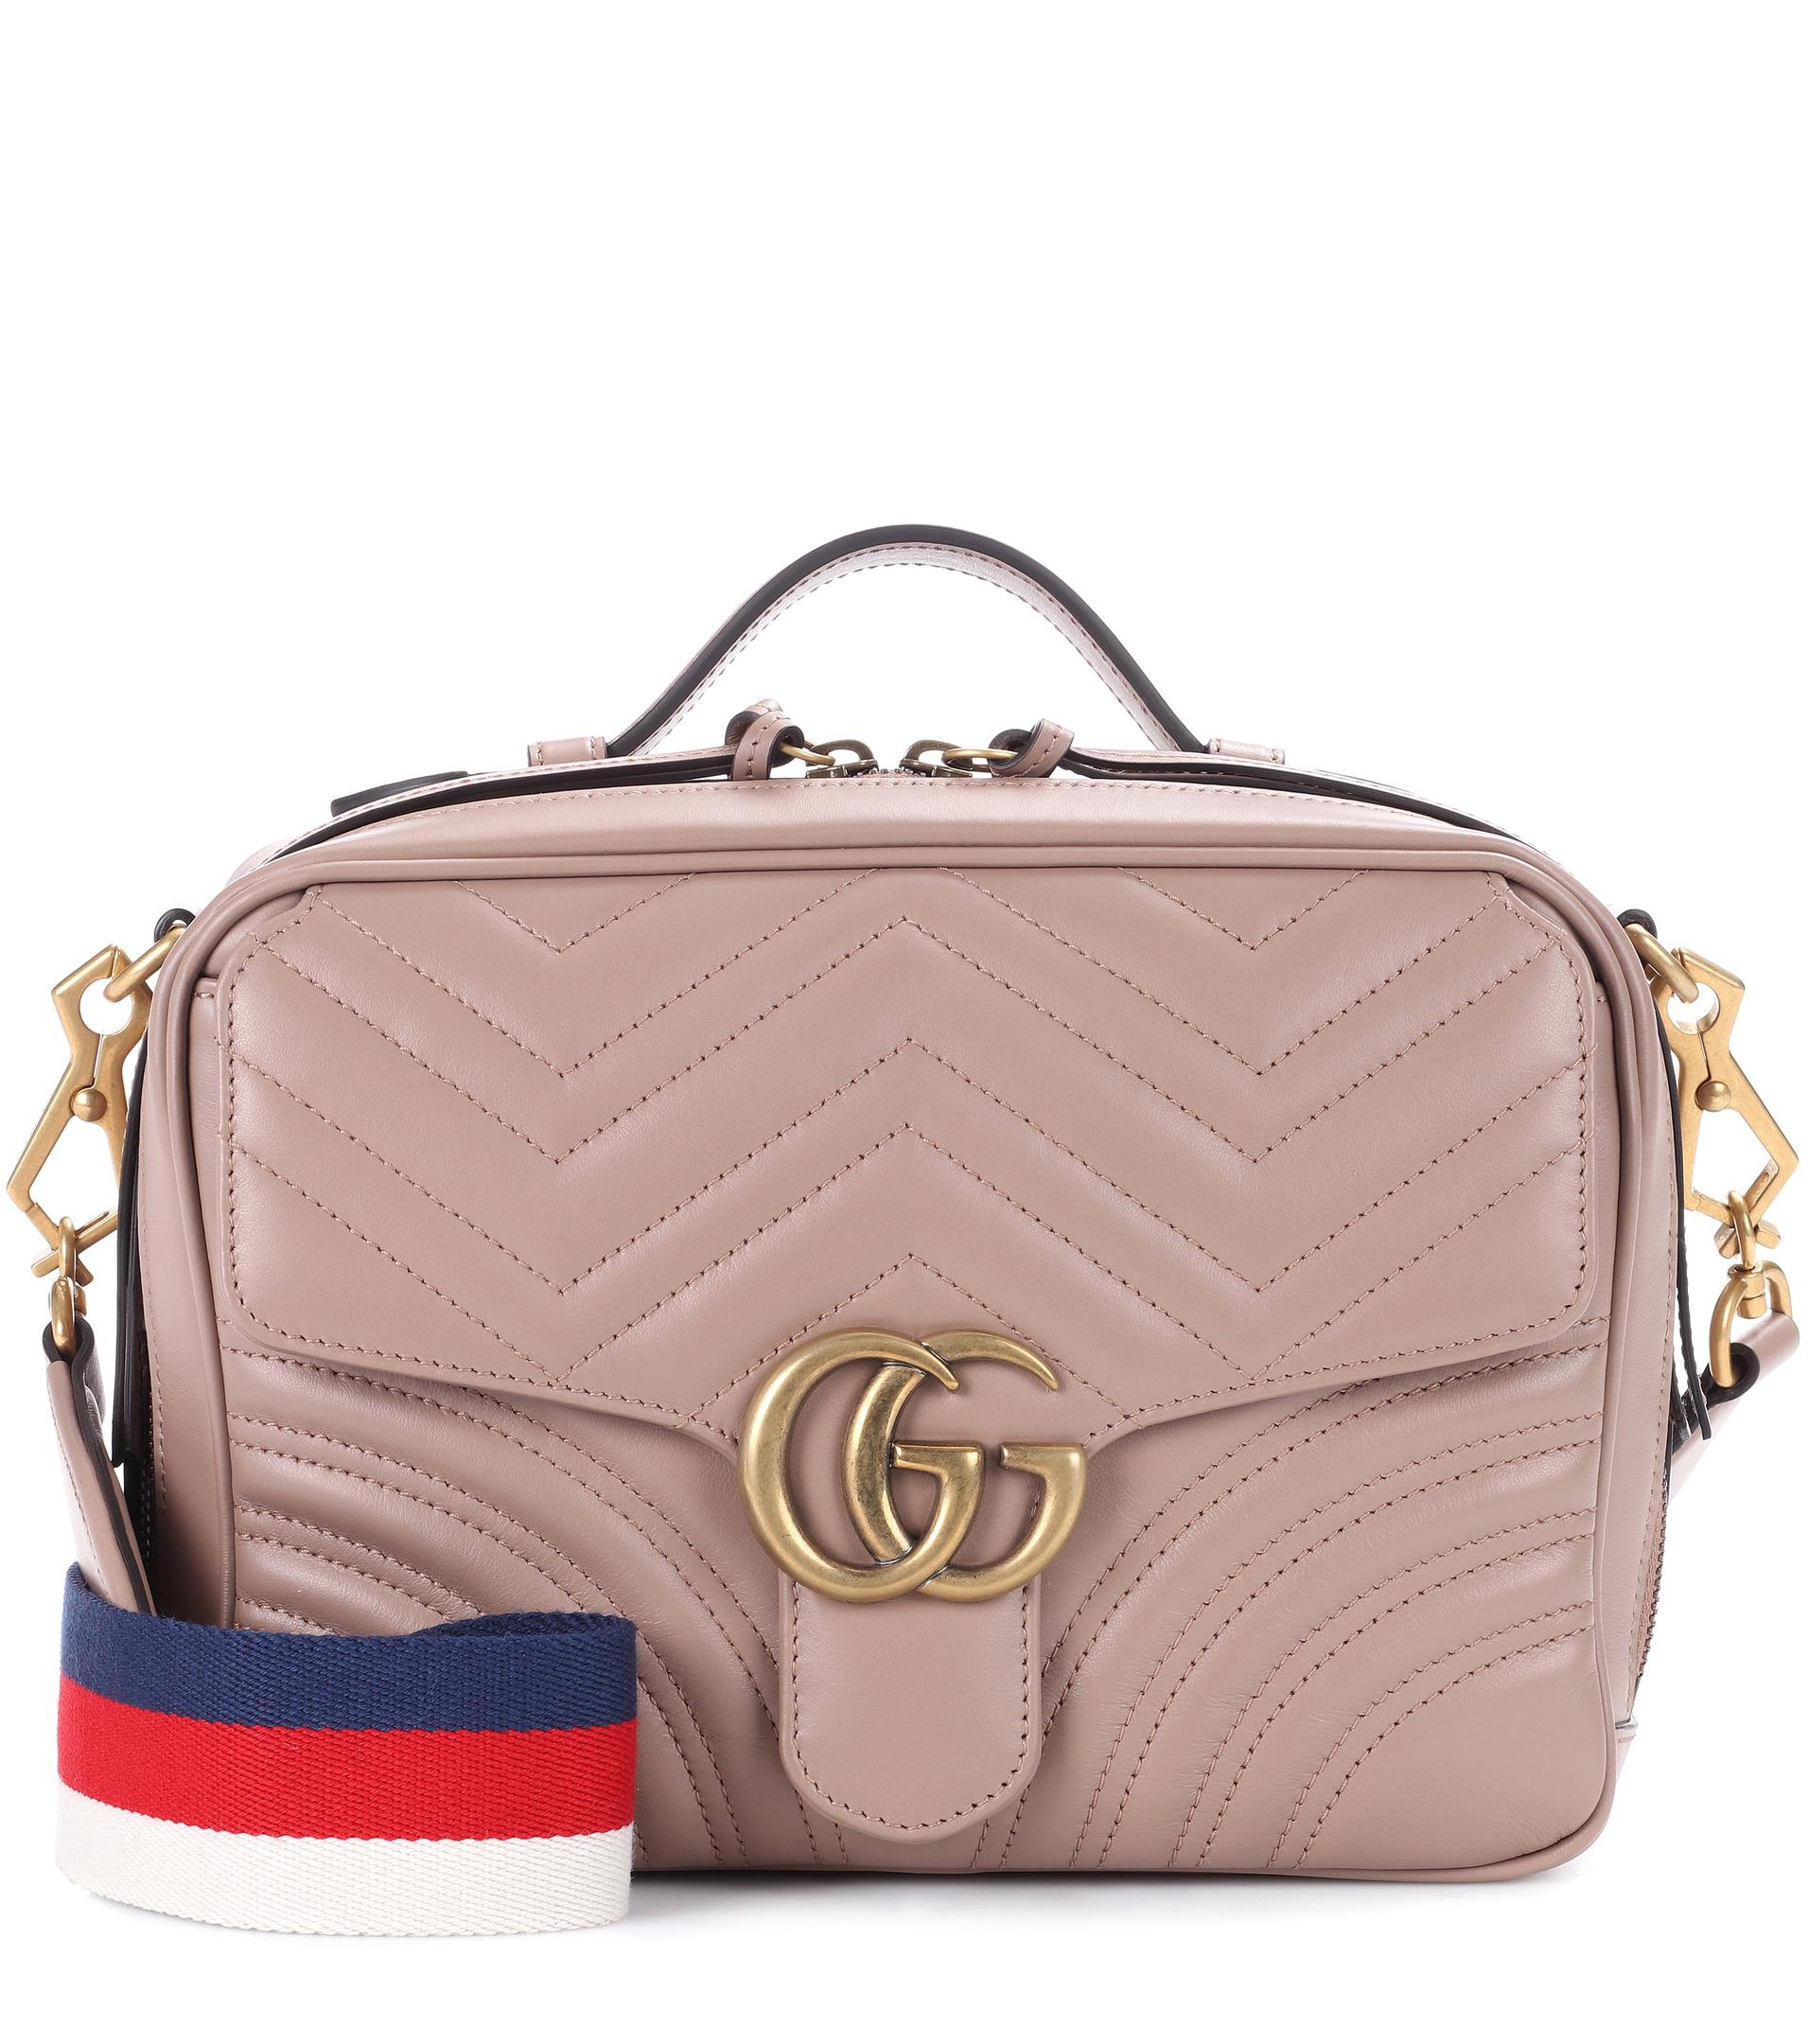 b97266aef6ec73 Gucci Gg Marmont Matelassé Leather Shoulder Bag in Natural - Lyst